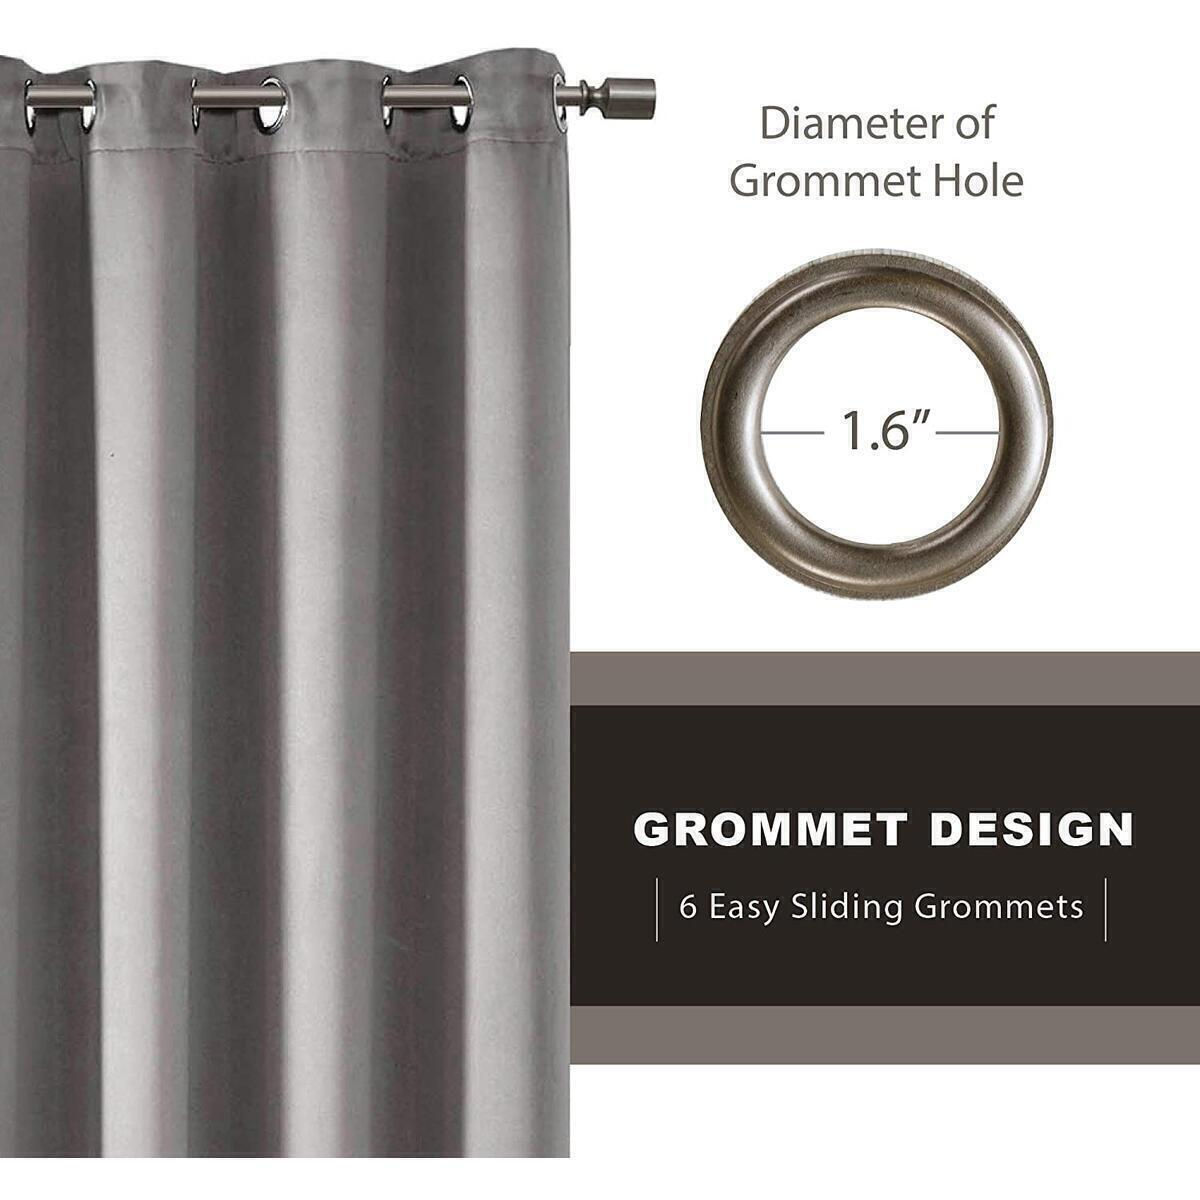 ANY COLOR - 42x84 - Blackout Curtains for Bedroom   Thermal Insulated Room Darkening Window Treatments W/Grommet Top   Triple Weave   Ideal for Nursery Or Kids Room   Any Color 42x84 - 2 Panels